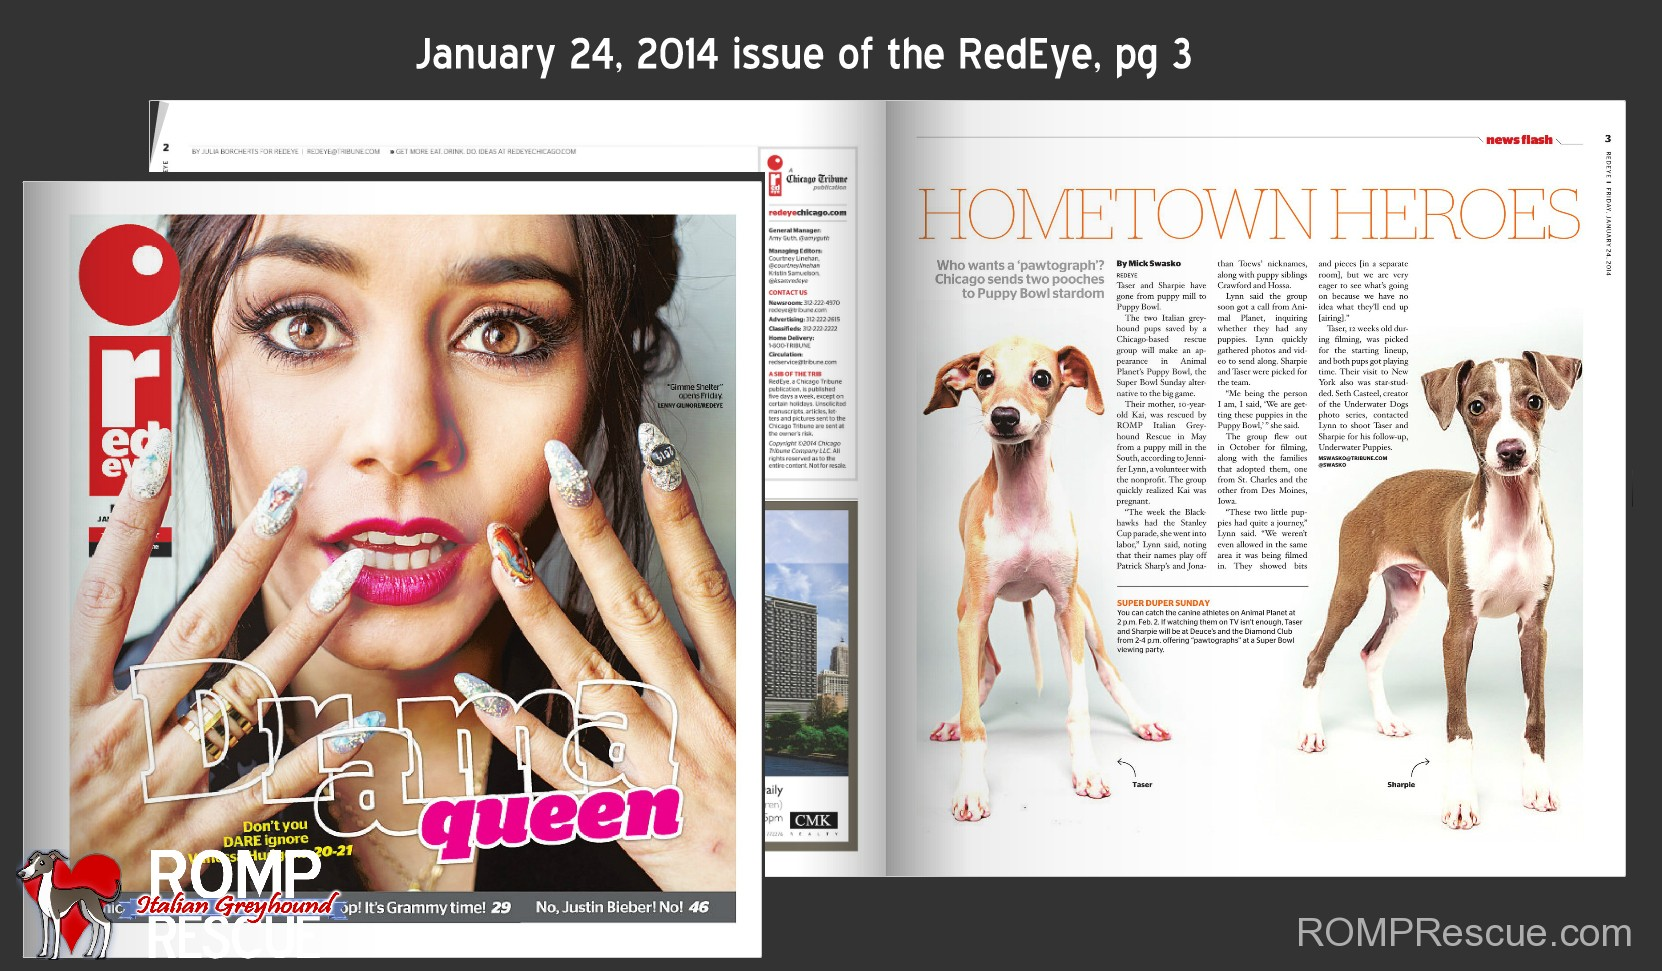 RedEye magazine, chicago, redeye, italian greyhound, article, print, puppy bowl, animal planet, x, 10, sharpie, taser, romp rescue, romp, rescue, italain greyhound, italian greyhounds, 2014, january, february, 24